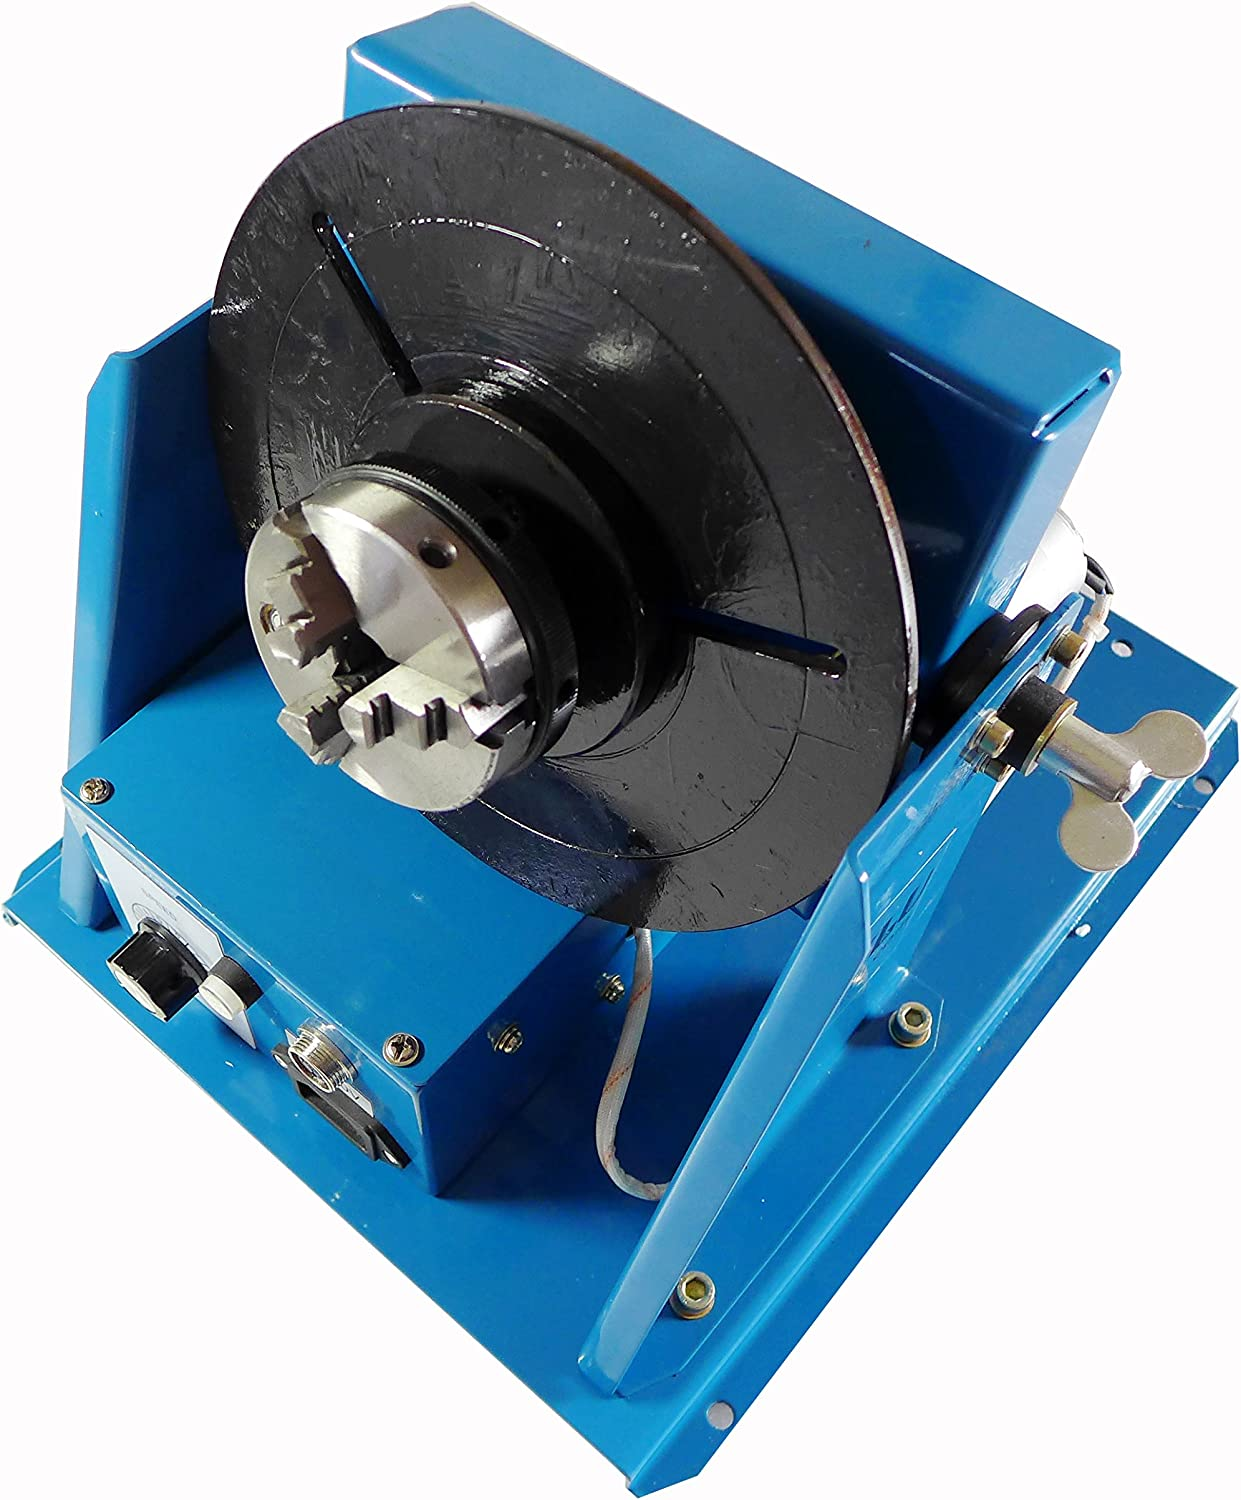 """Rotary Welding Positioner Turntable Table 2.5/"""" 3Jaw Lathe Chuck 2-10RPM 80A 110V"""